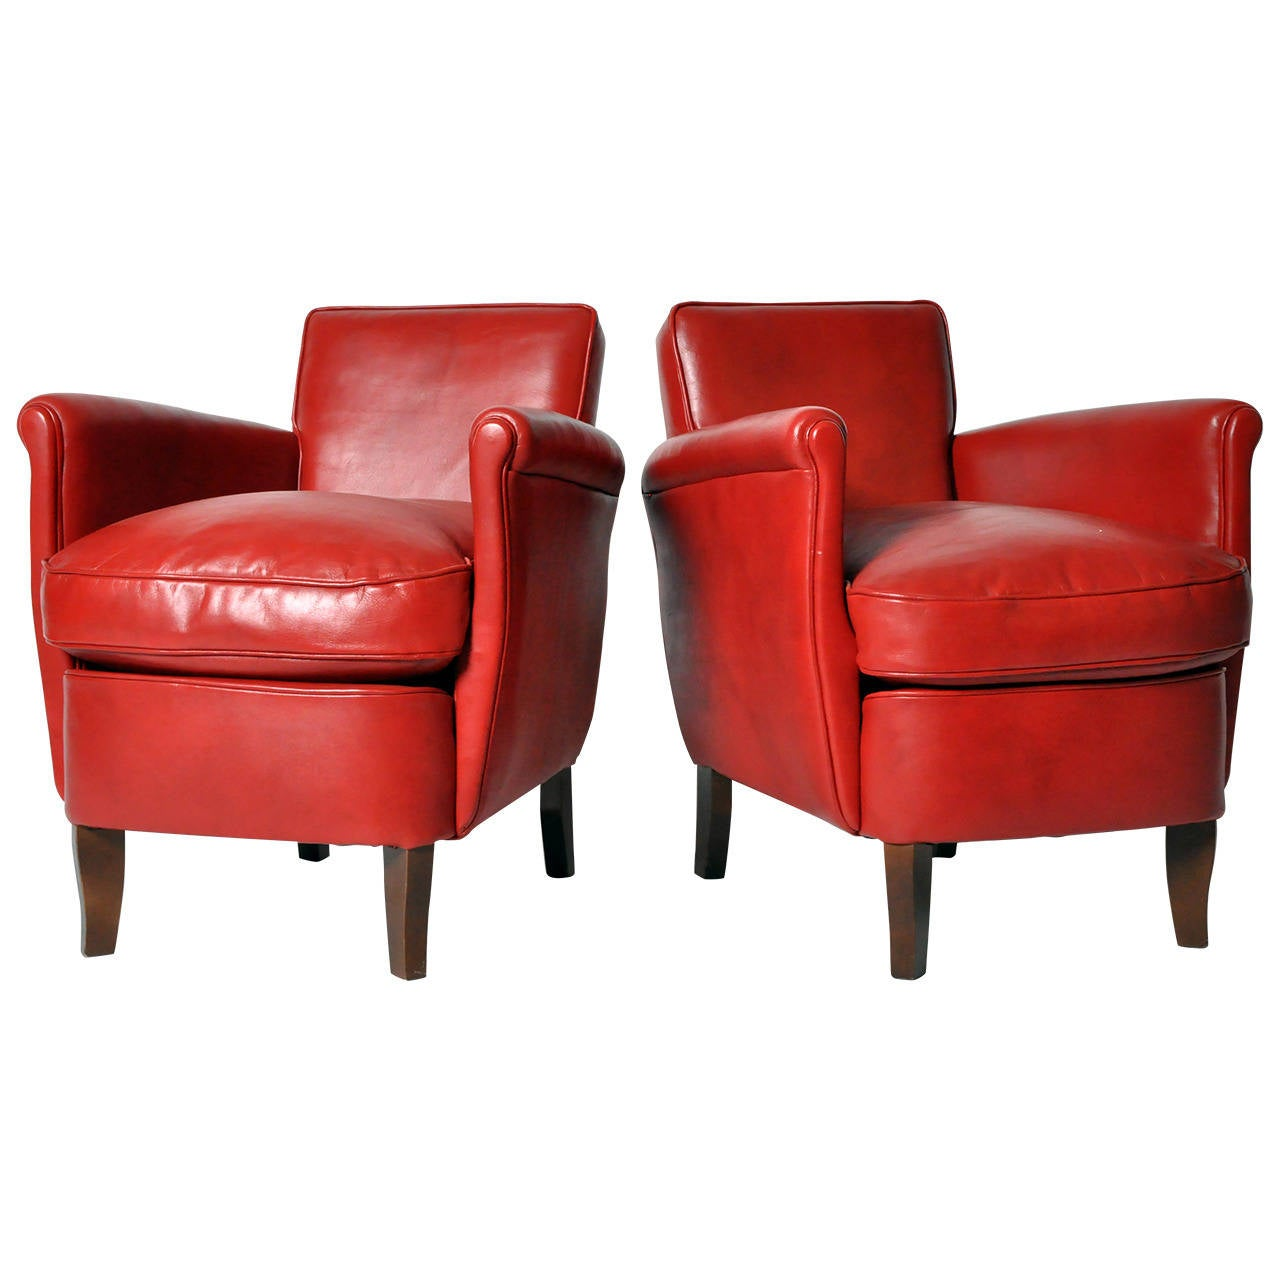 Pair Of Petite Club Chairs For Sale At 1stdibs